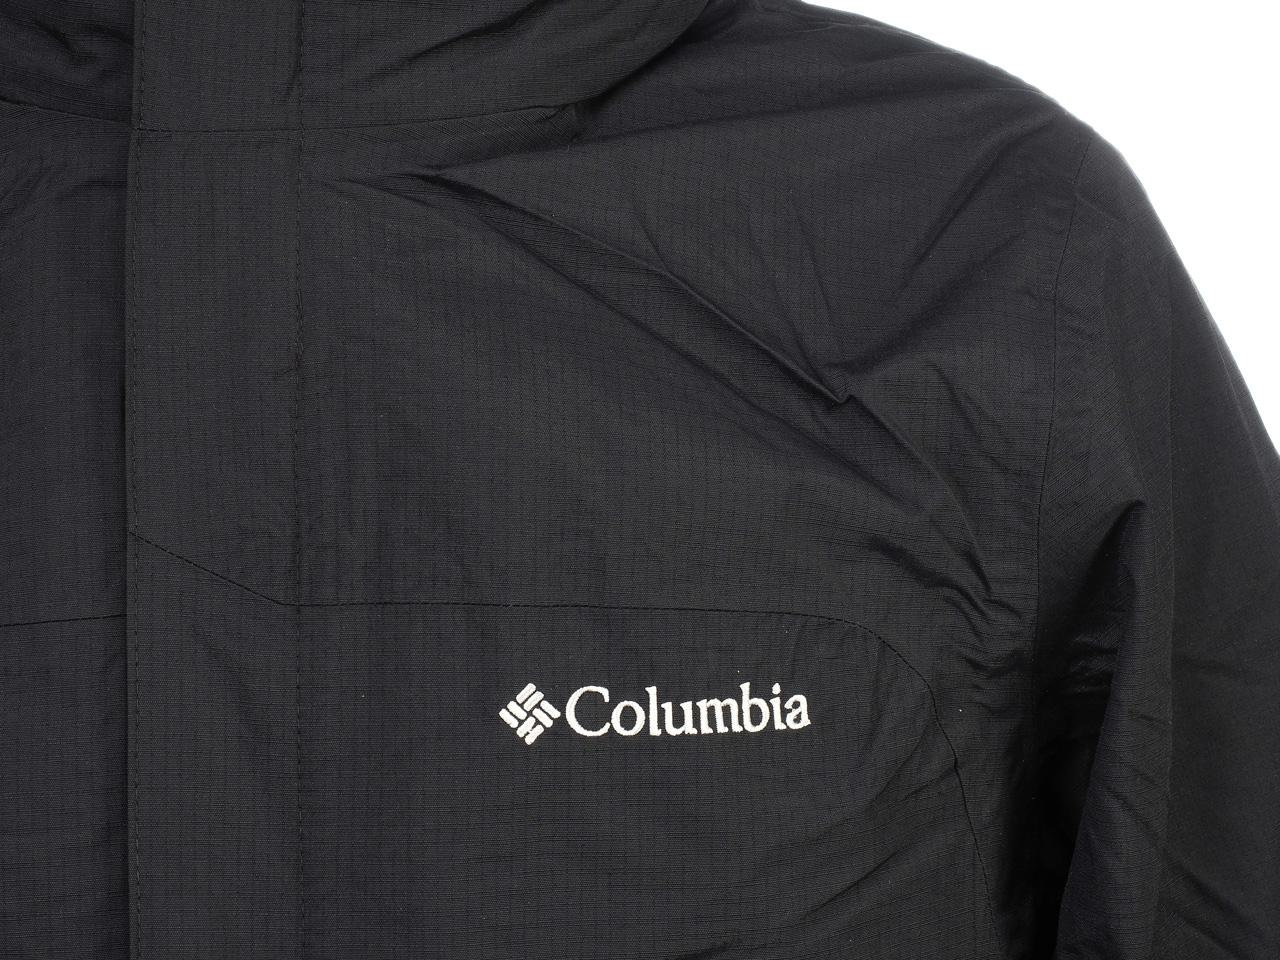 Jackets-3-in-1-Columbia-Mission-Air-Black-Black-41300-New thumbnail 3